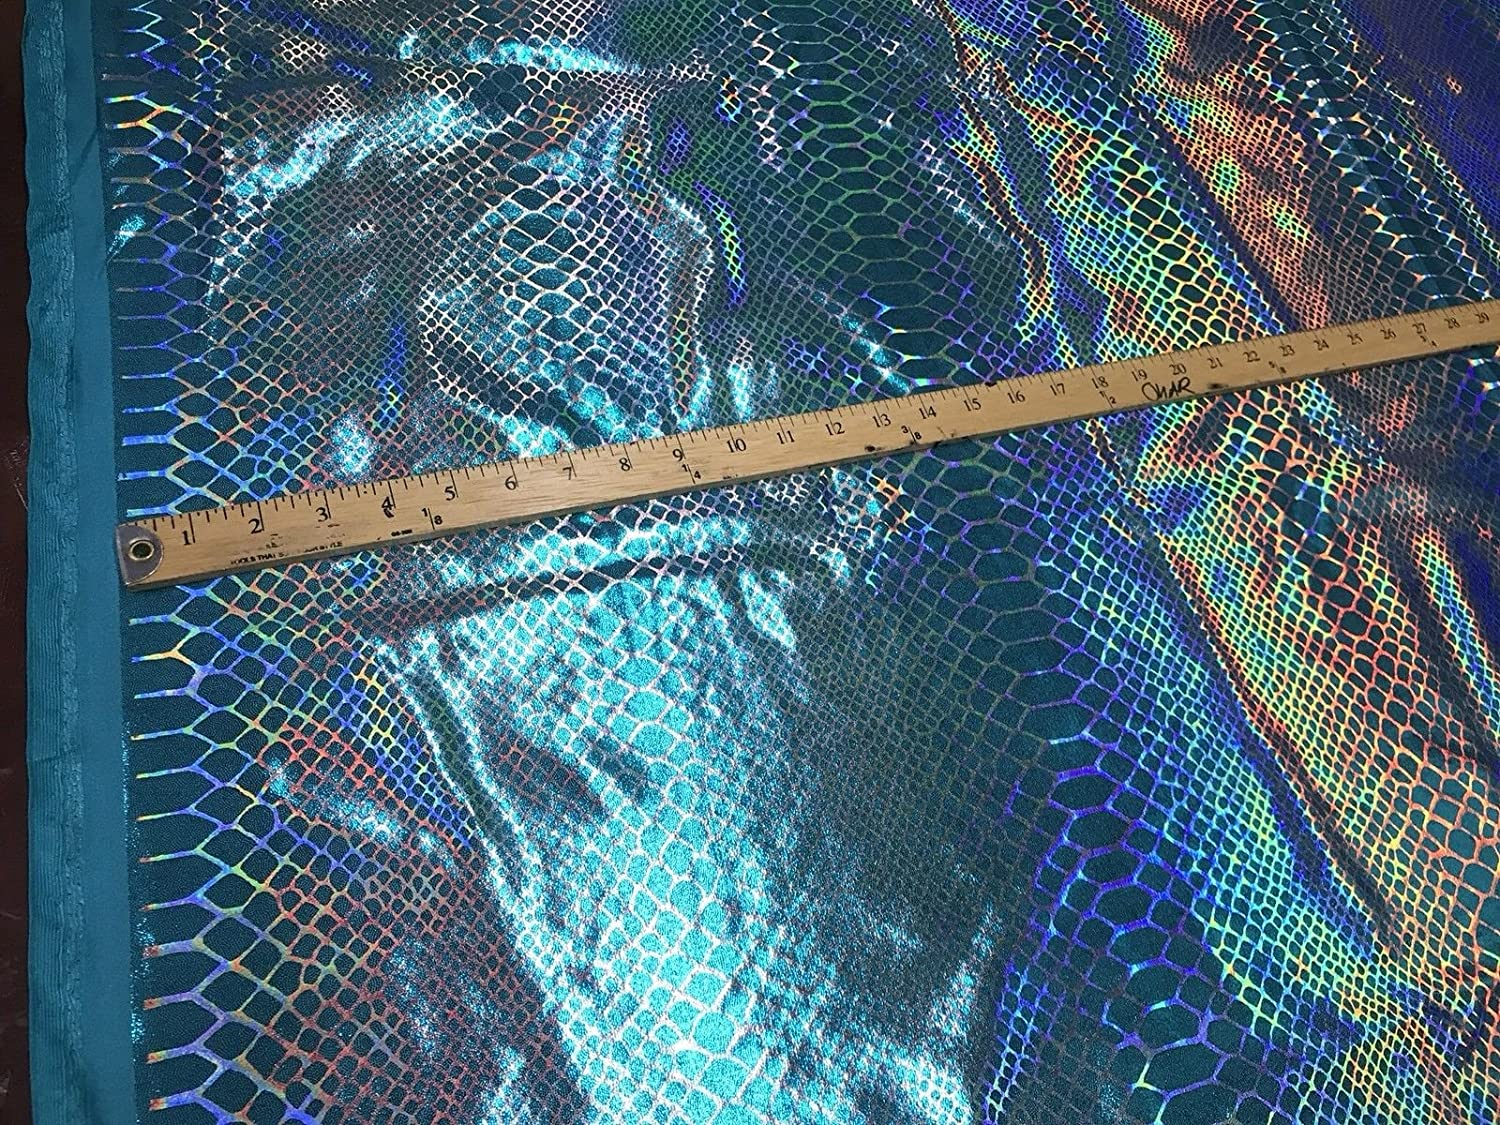 New iridescent metallic nylon spandex dragon design 4way stretch 5860 Sold by the YD Ships worldwide from Los Angeles California USA.